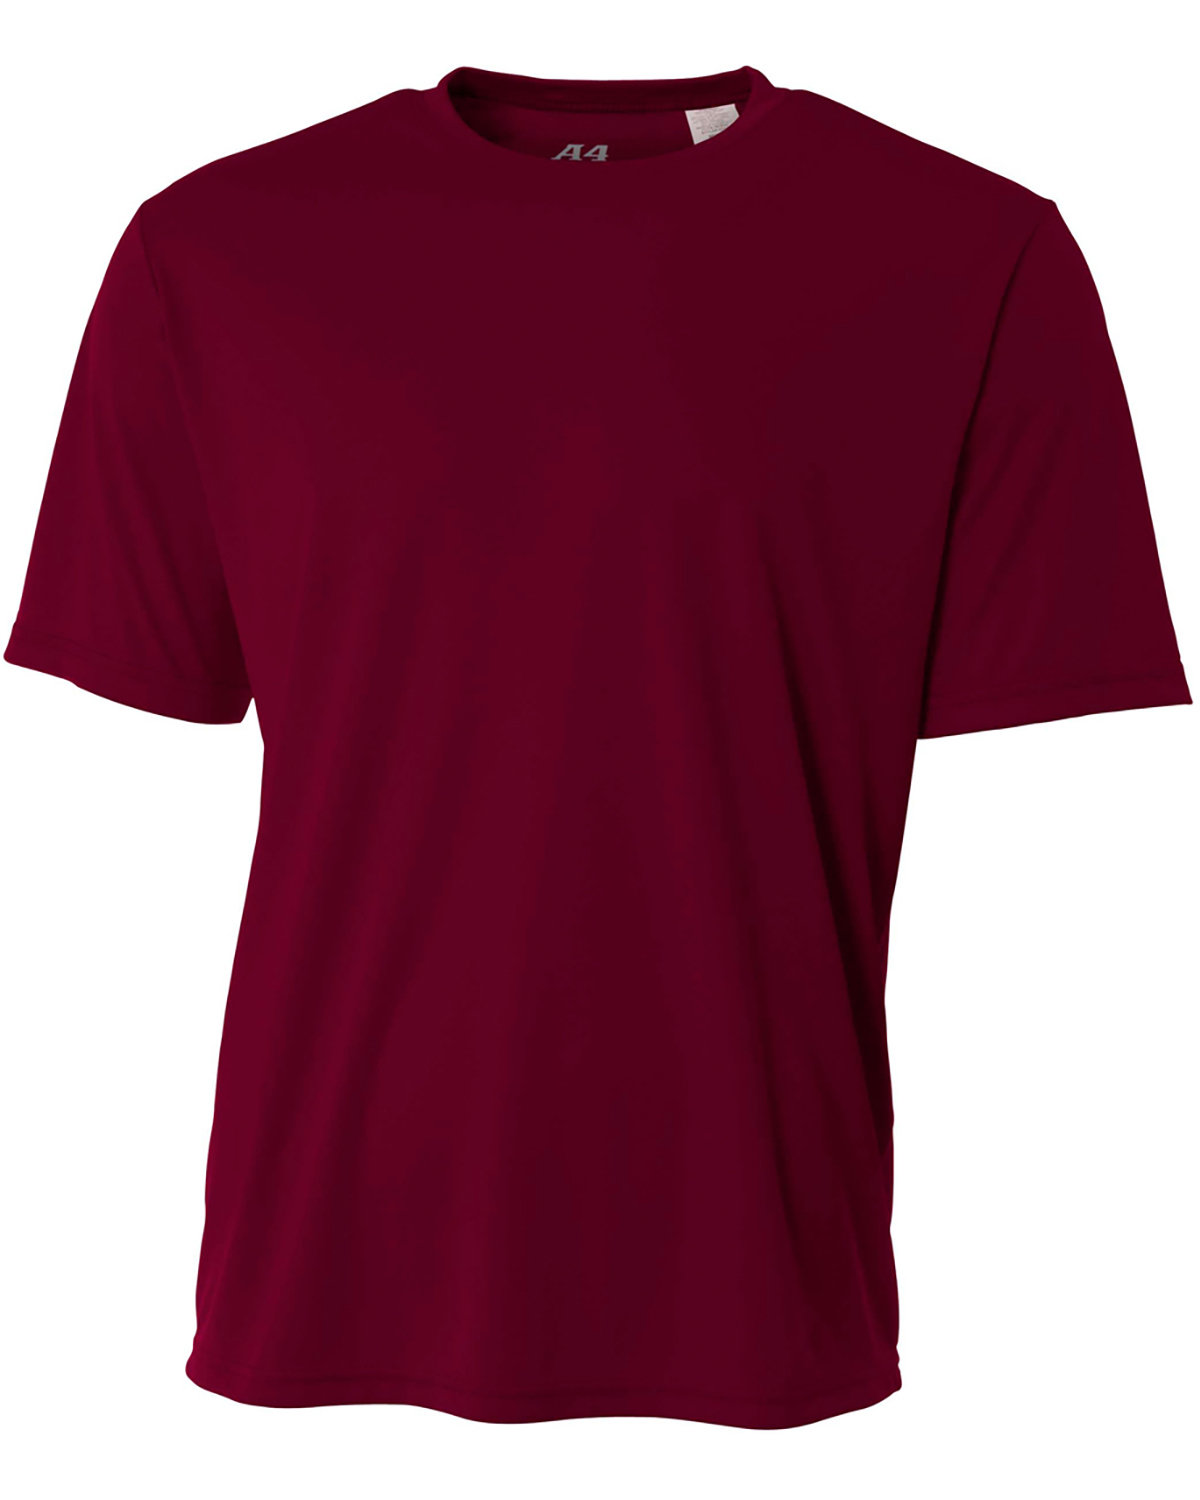 A4 Youth Cooling Performance T-Shirt MAROON